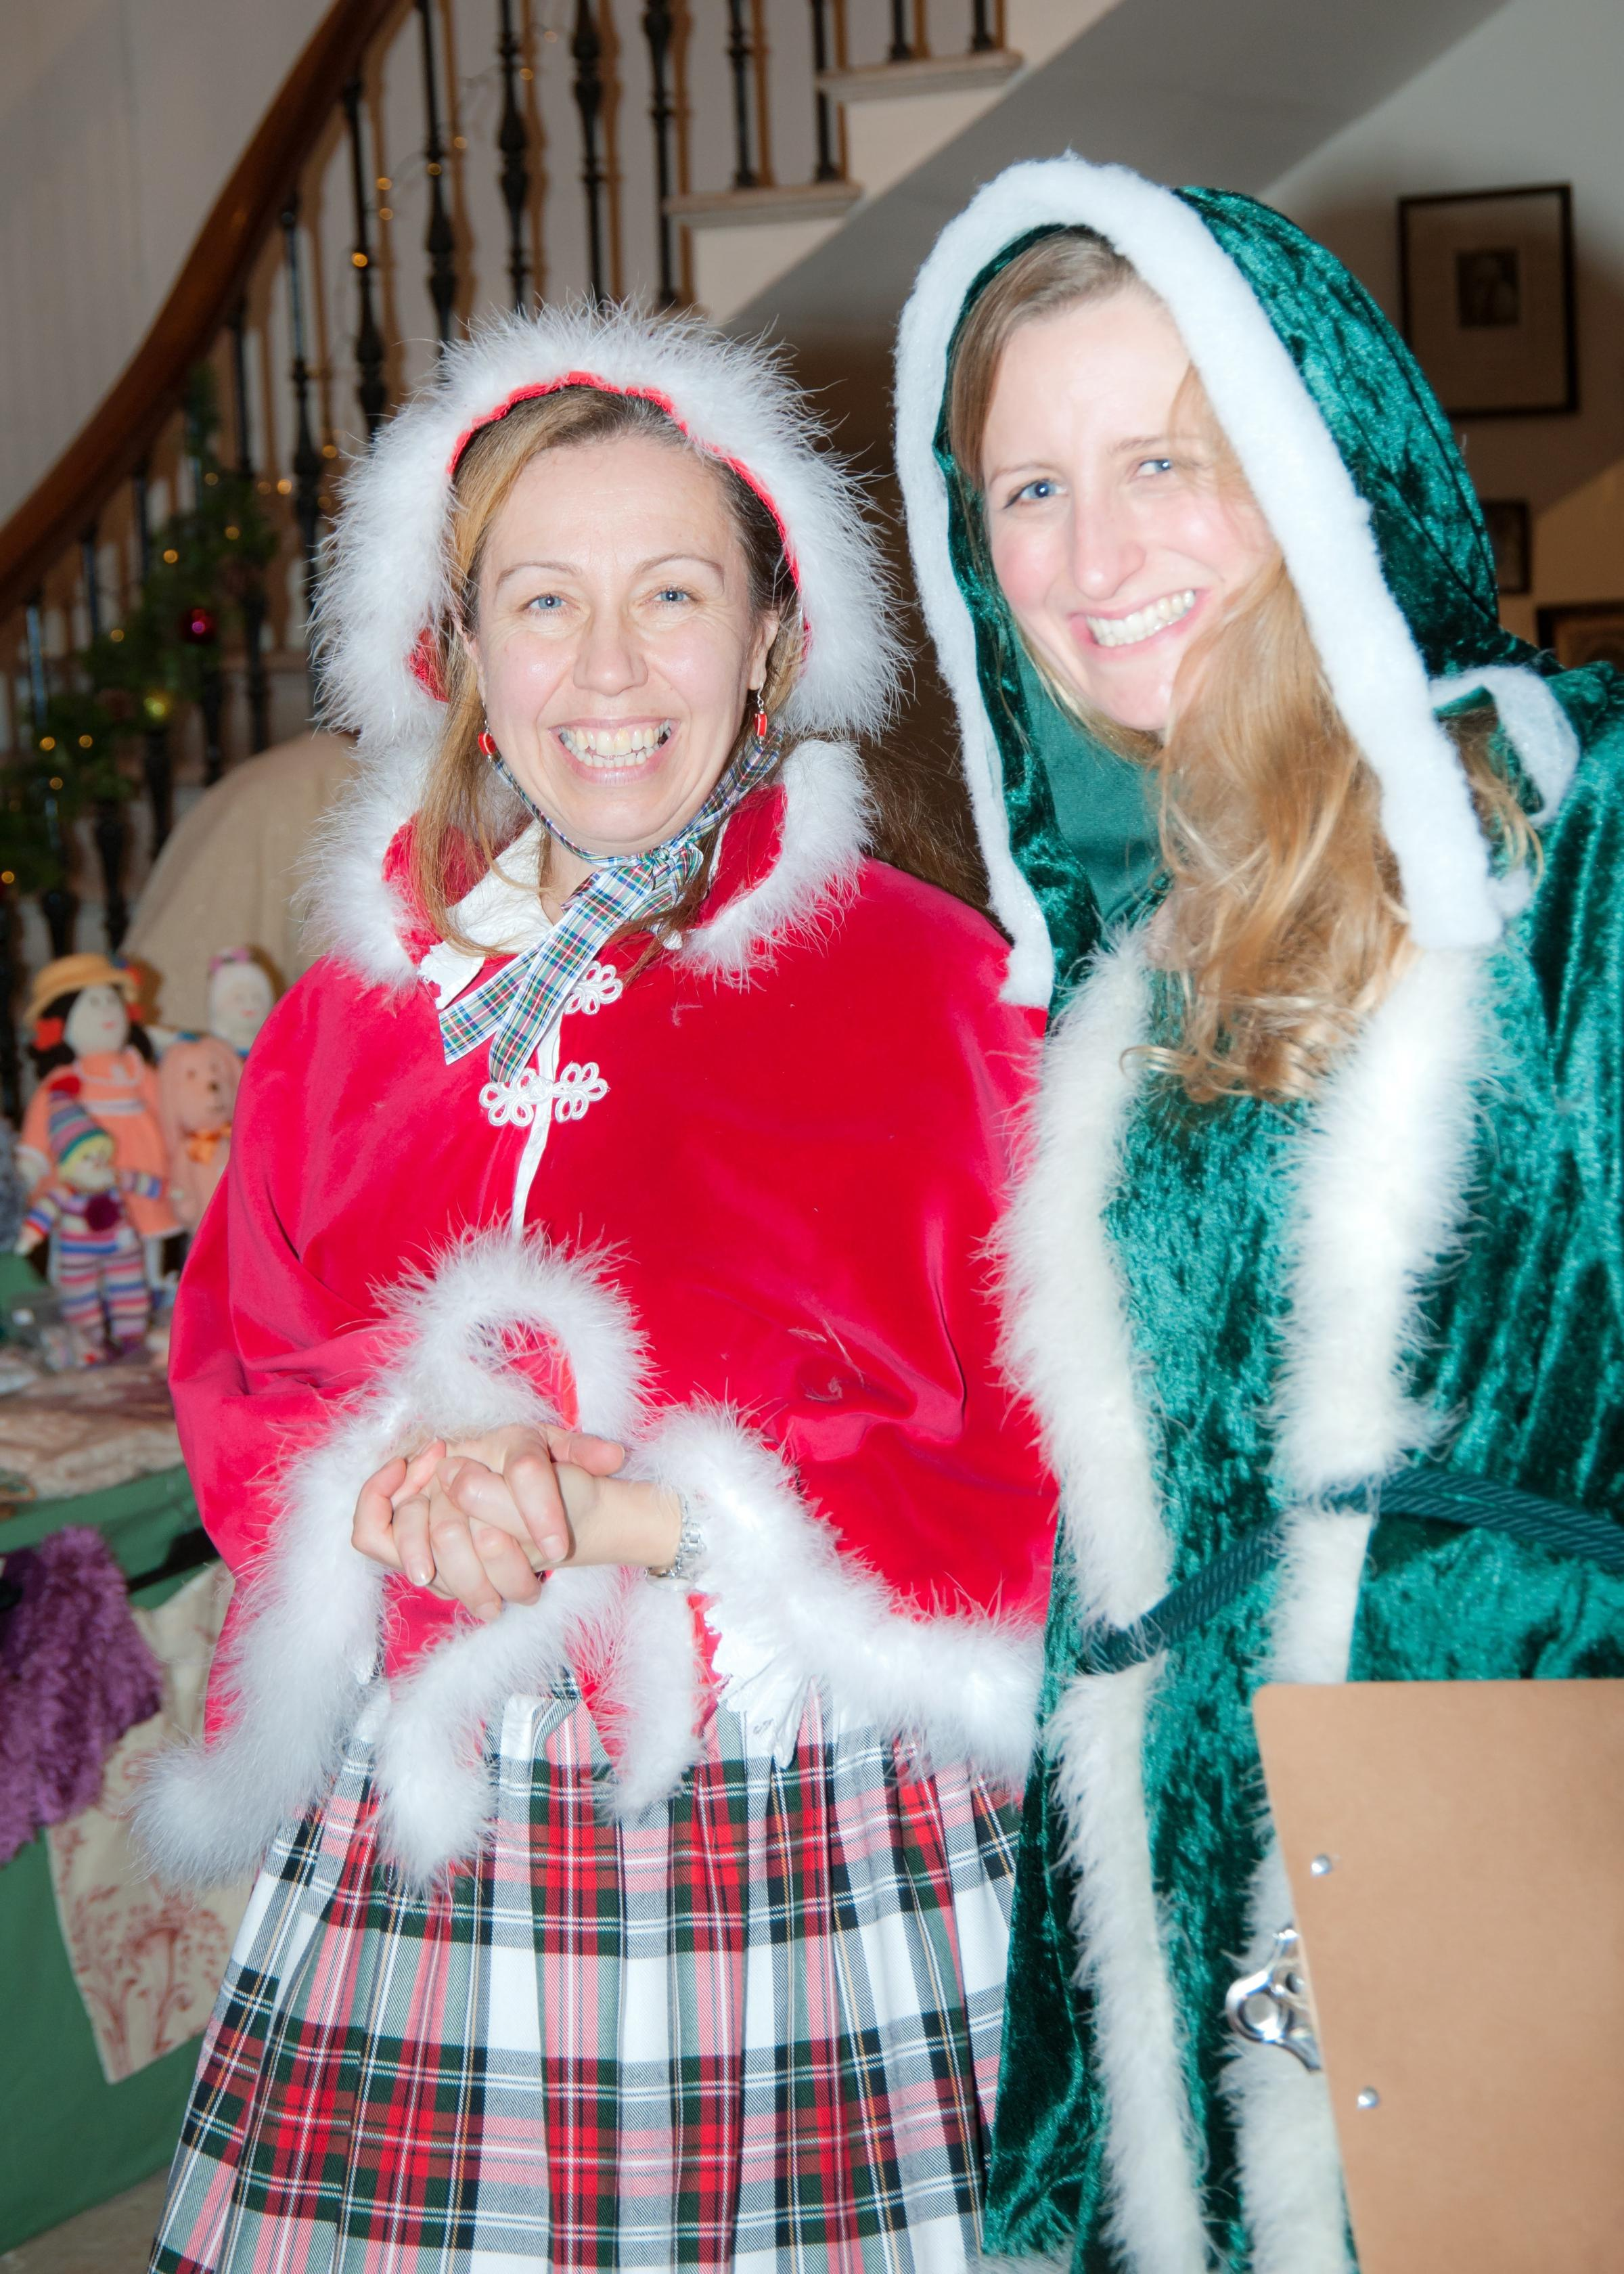 Pippa Ashmore and Cathy Hines getting in the festive spirit at Hartlebury Castle